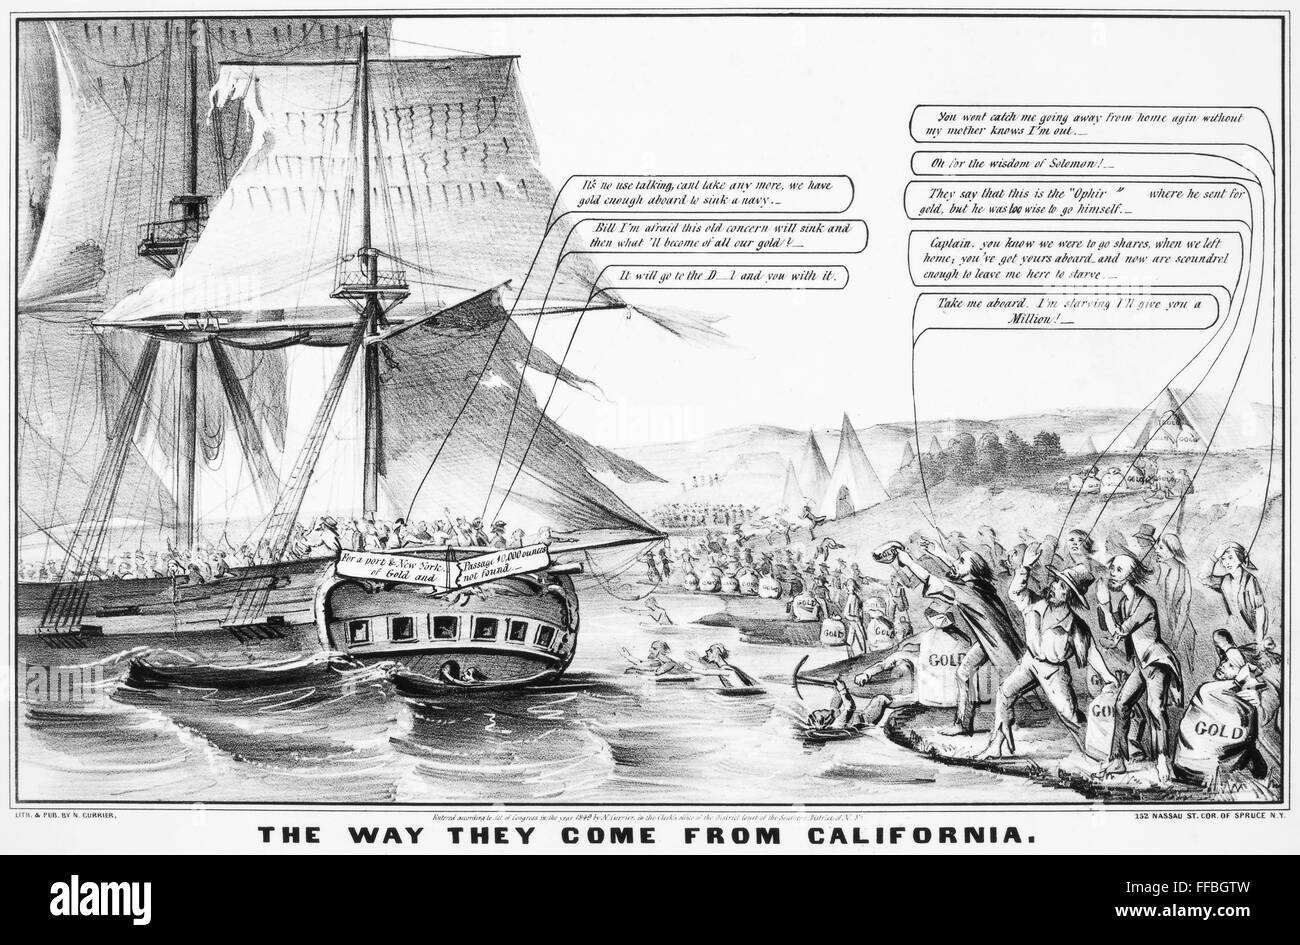 gold rush cartoon 1849 nthe way they come from